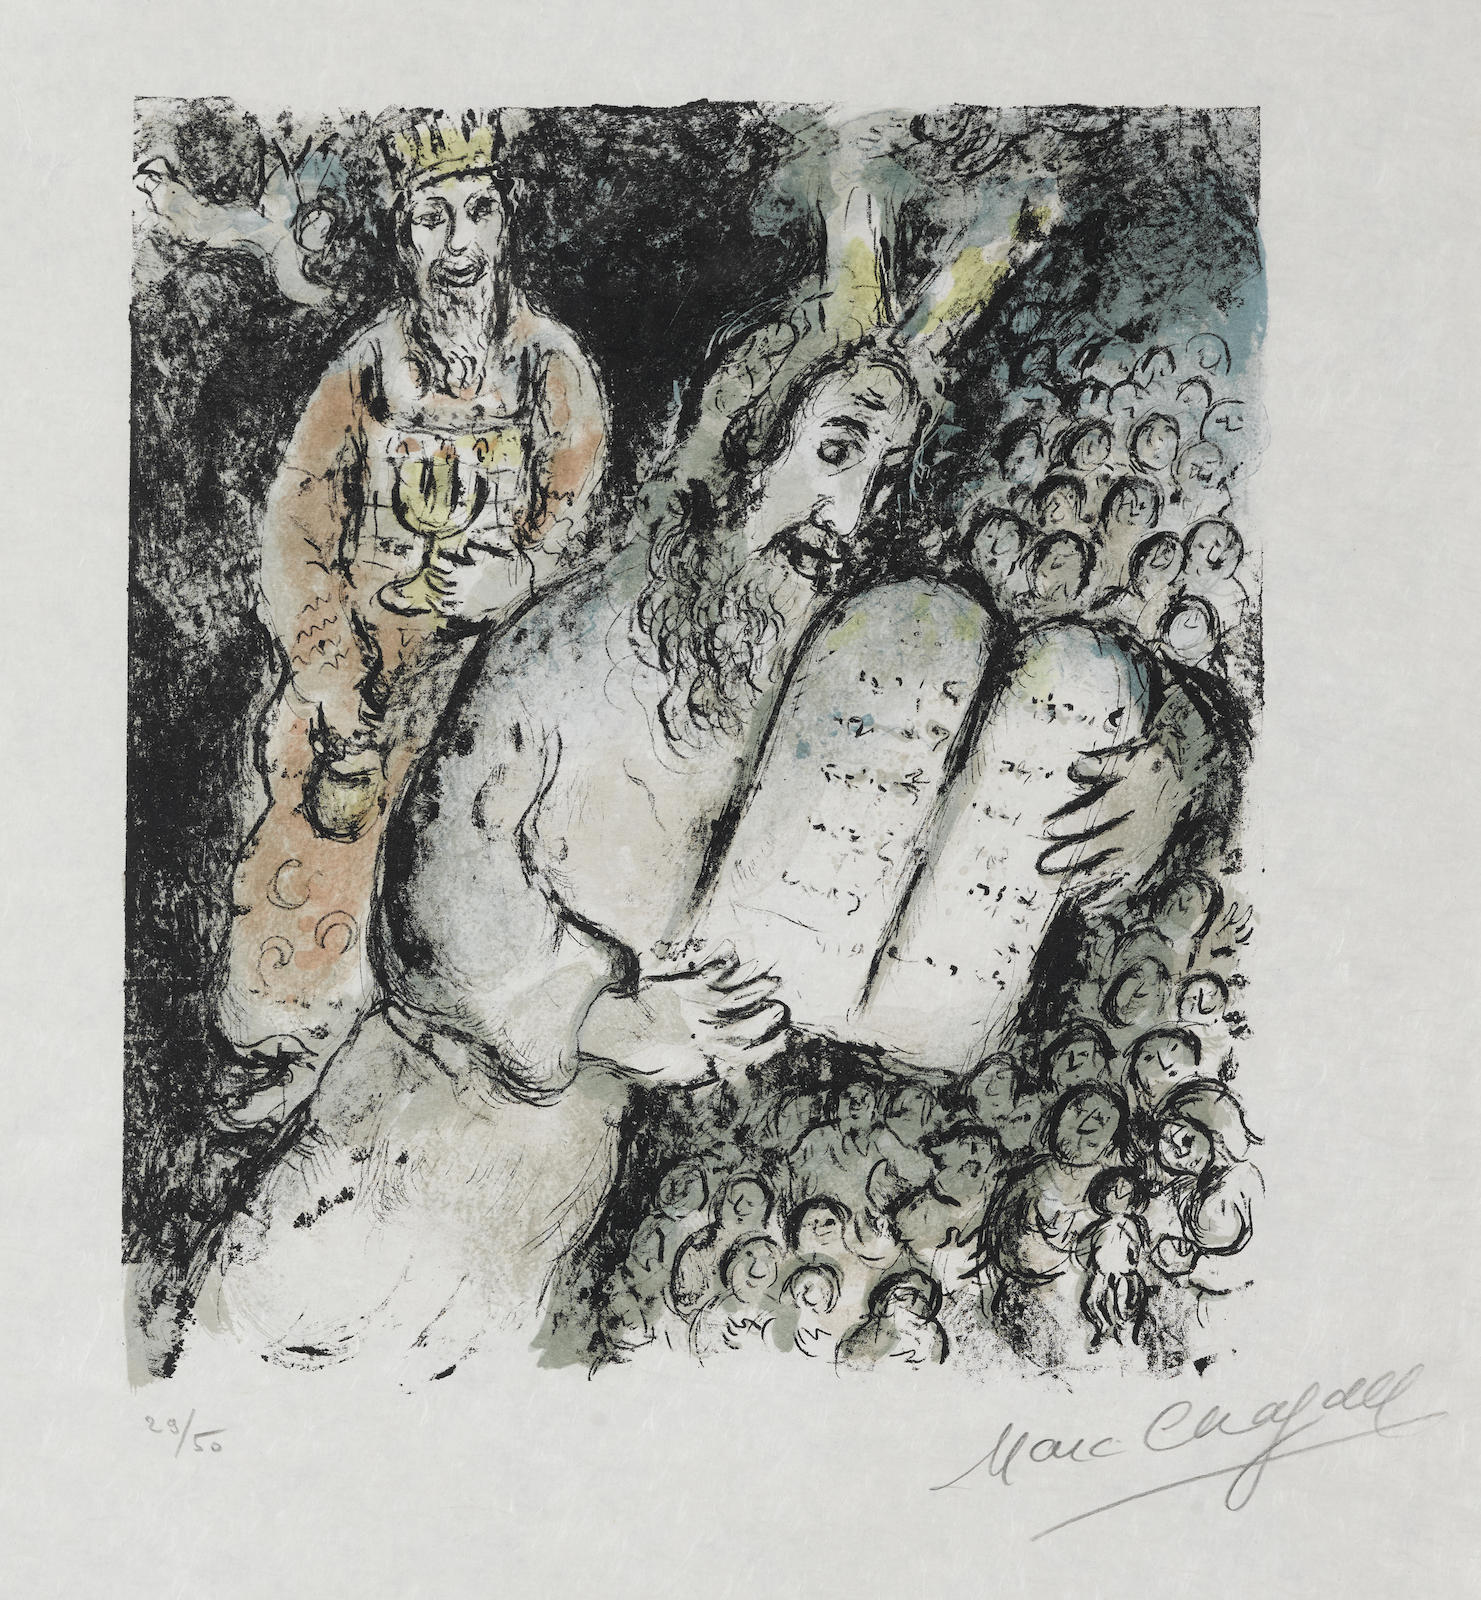 Marc Chagall-Moses And Aaron-1979